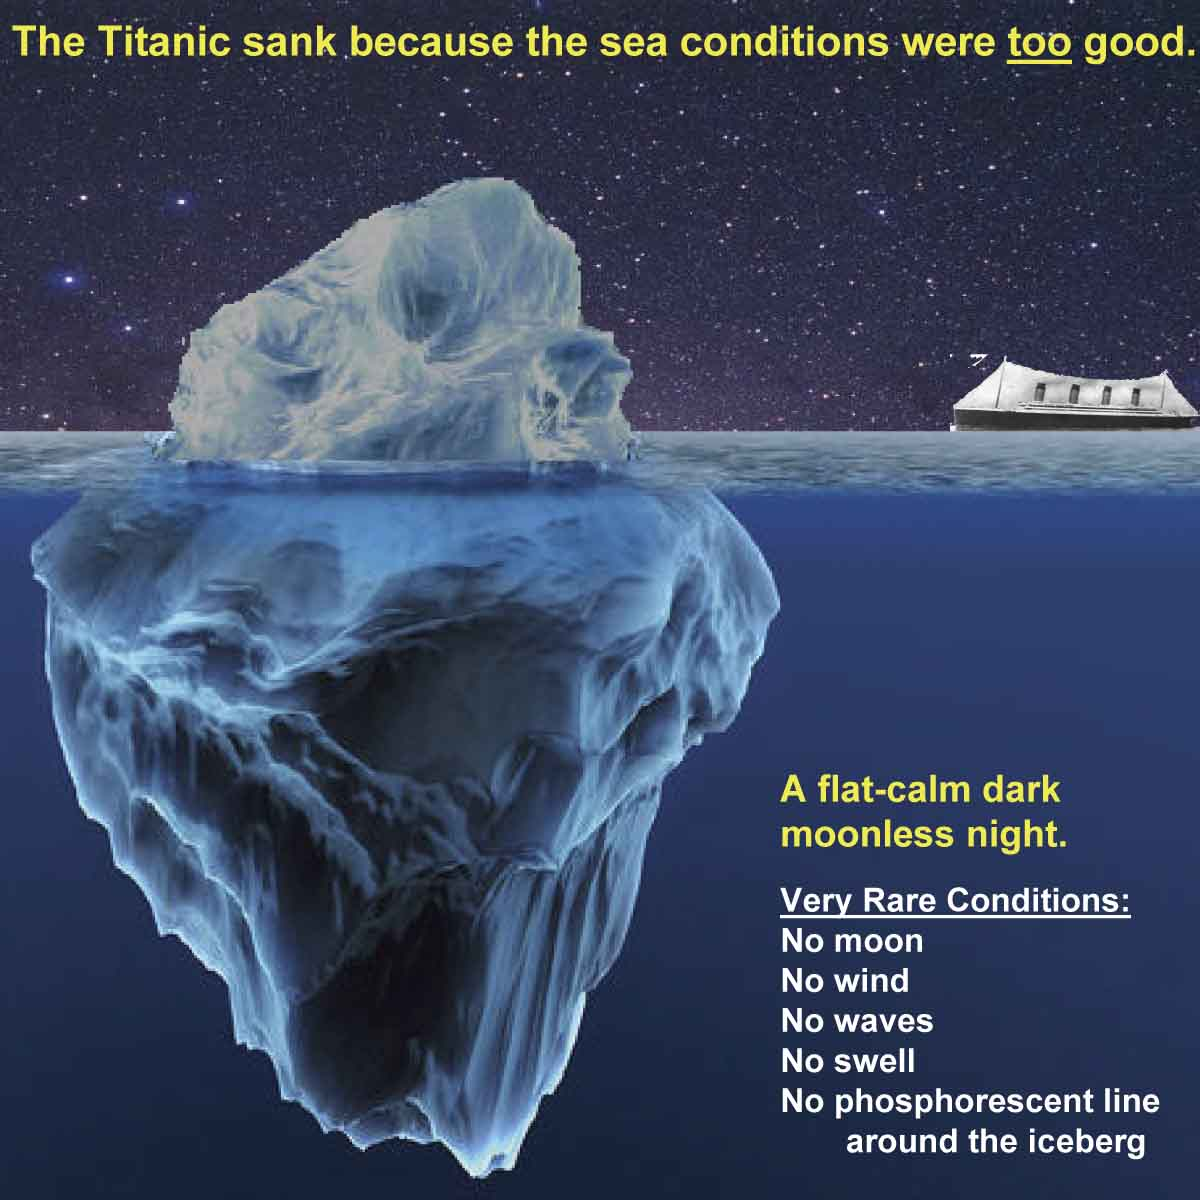 The Titanic Sank Because The Sea Conditions Were Too Good